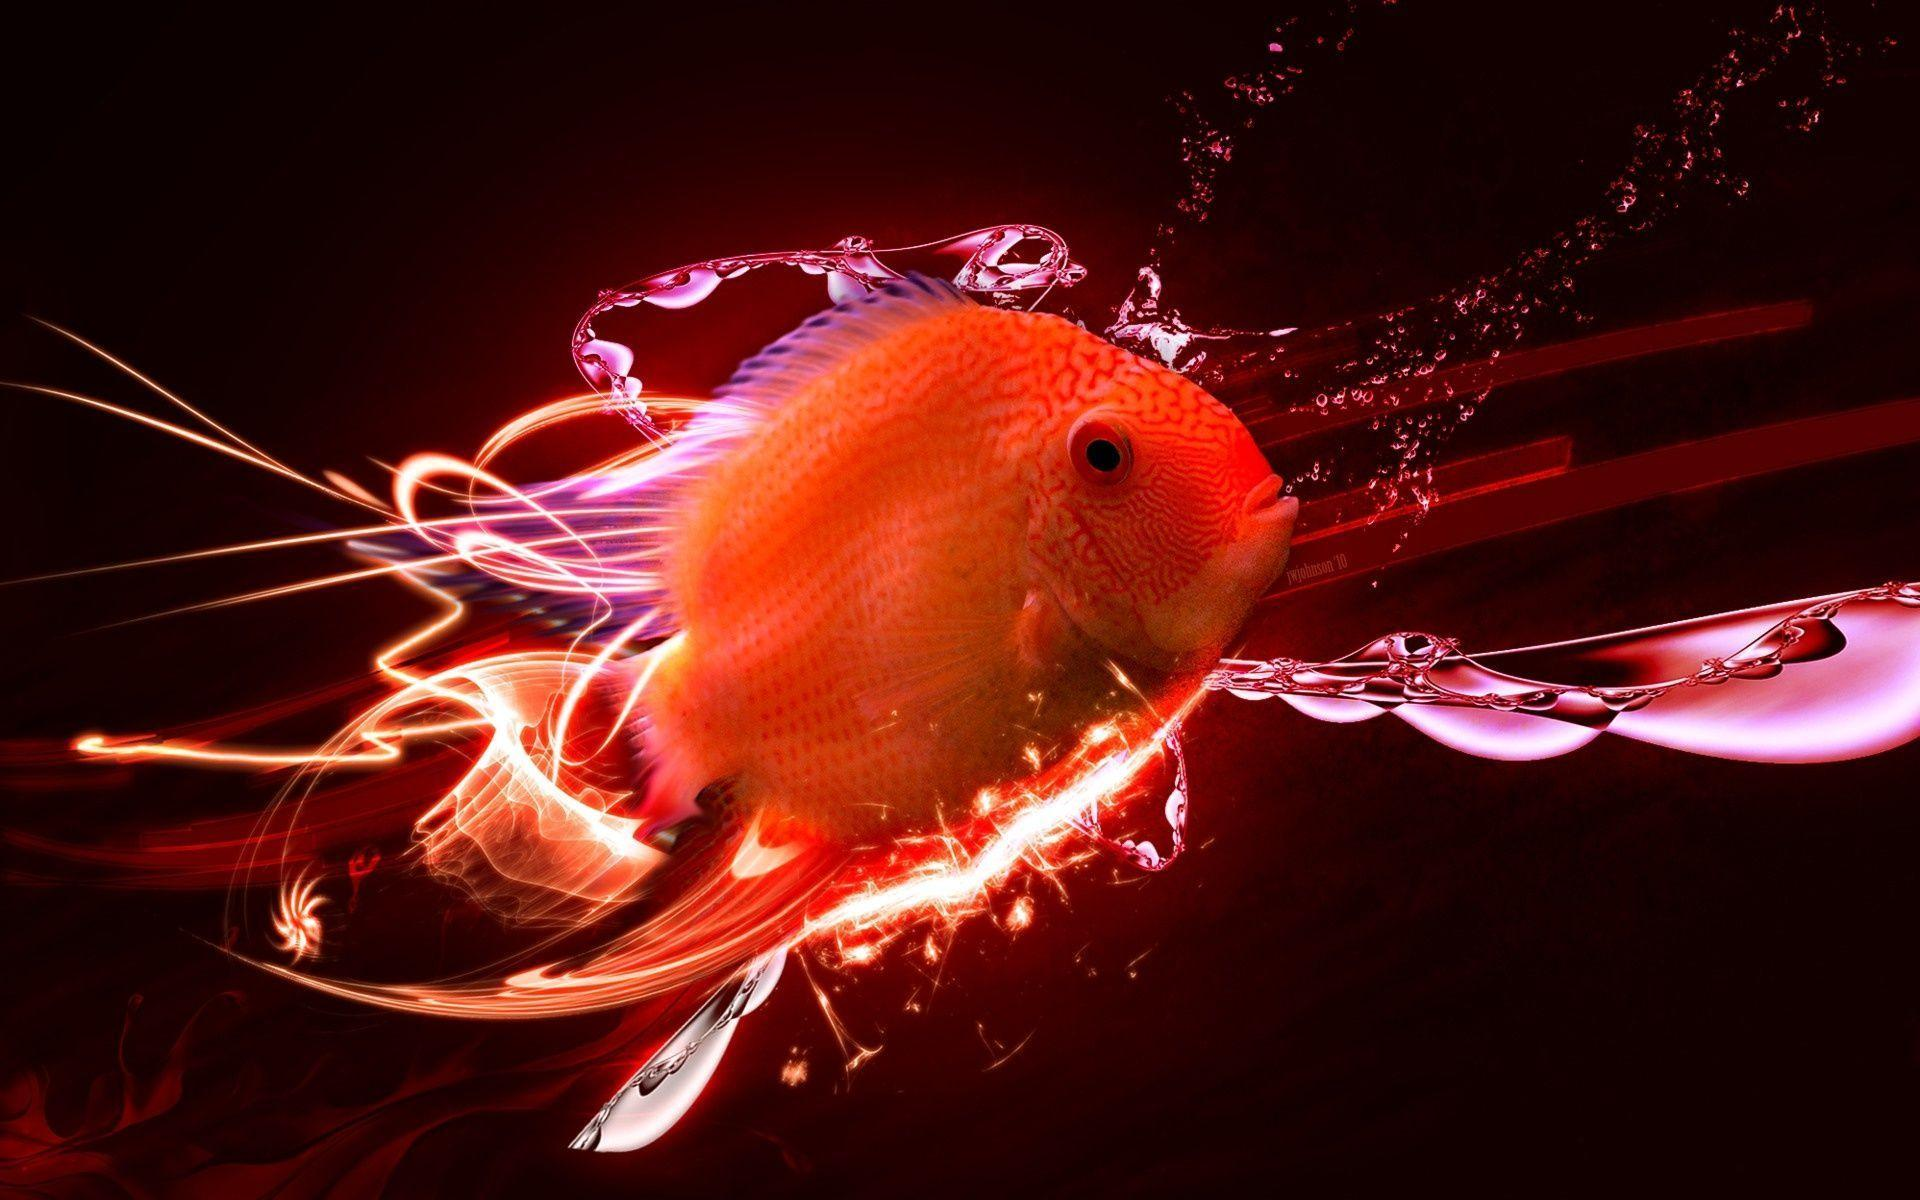 Digital Red Fish Wallpapers and Photo